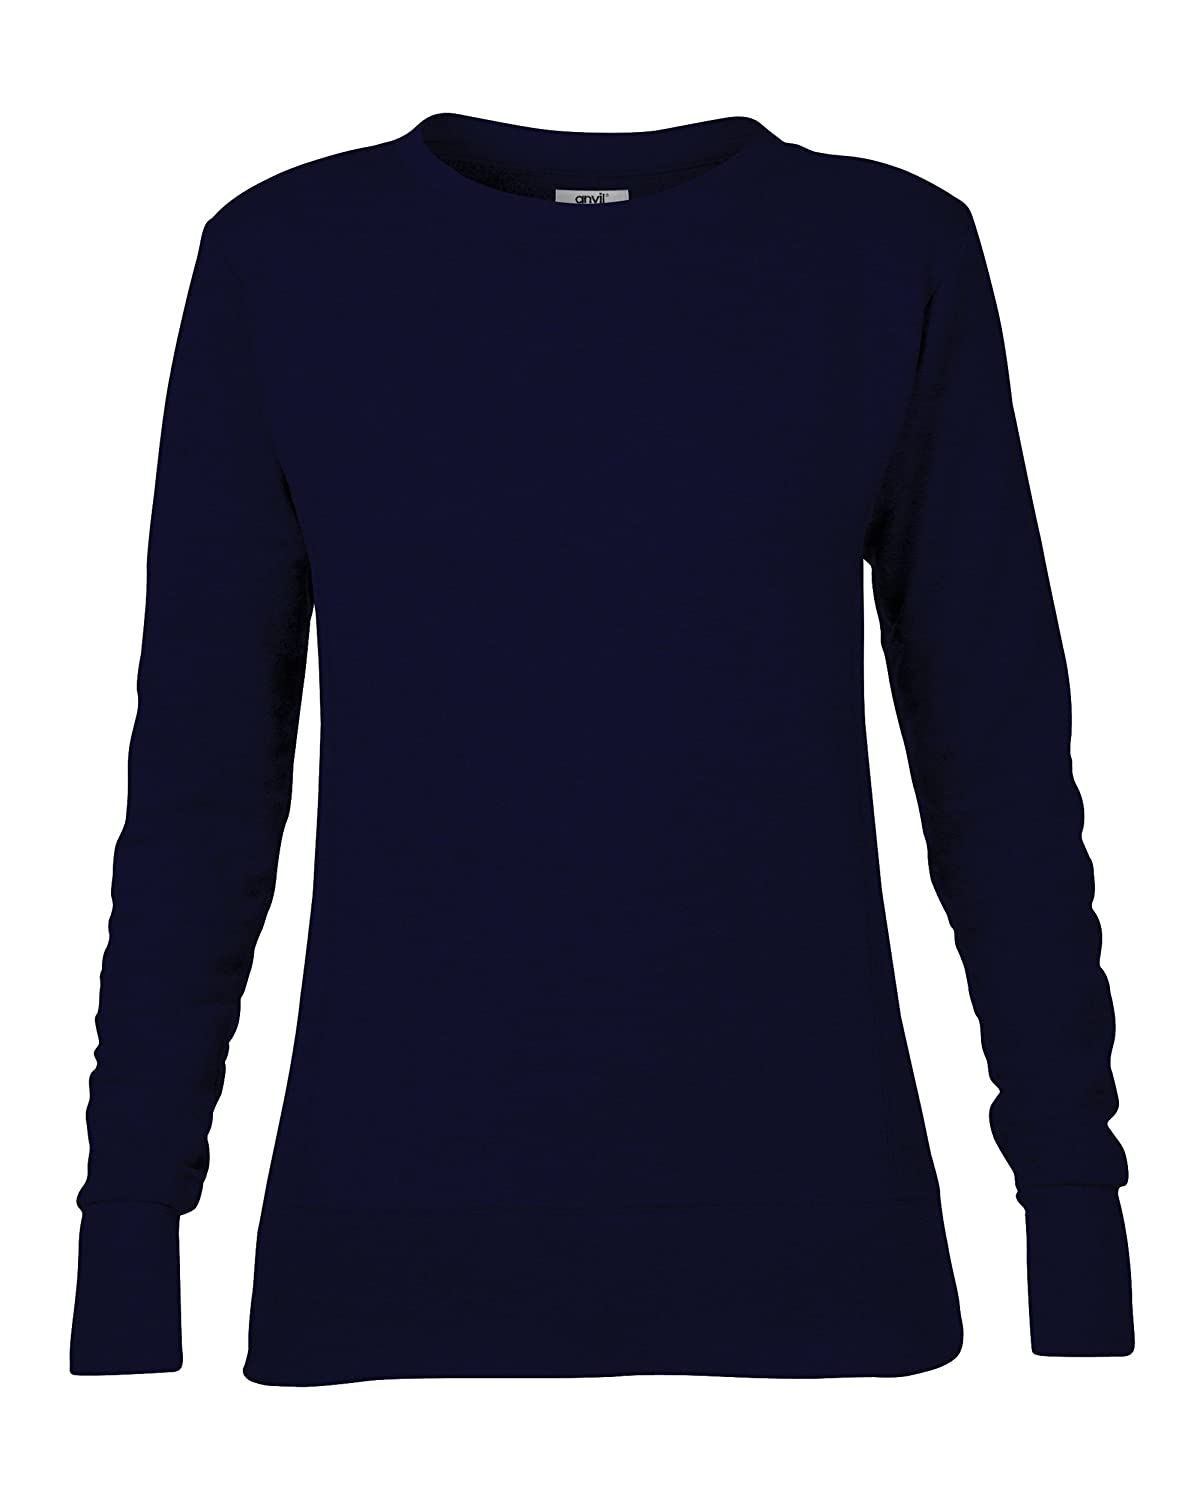 Anvil Anvil Women'S Mid-Scoop French Terry Sweatshirt A522F-Parent